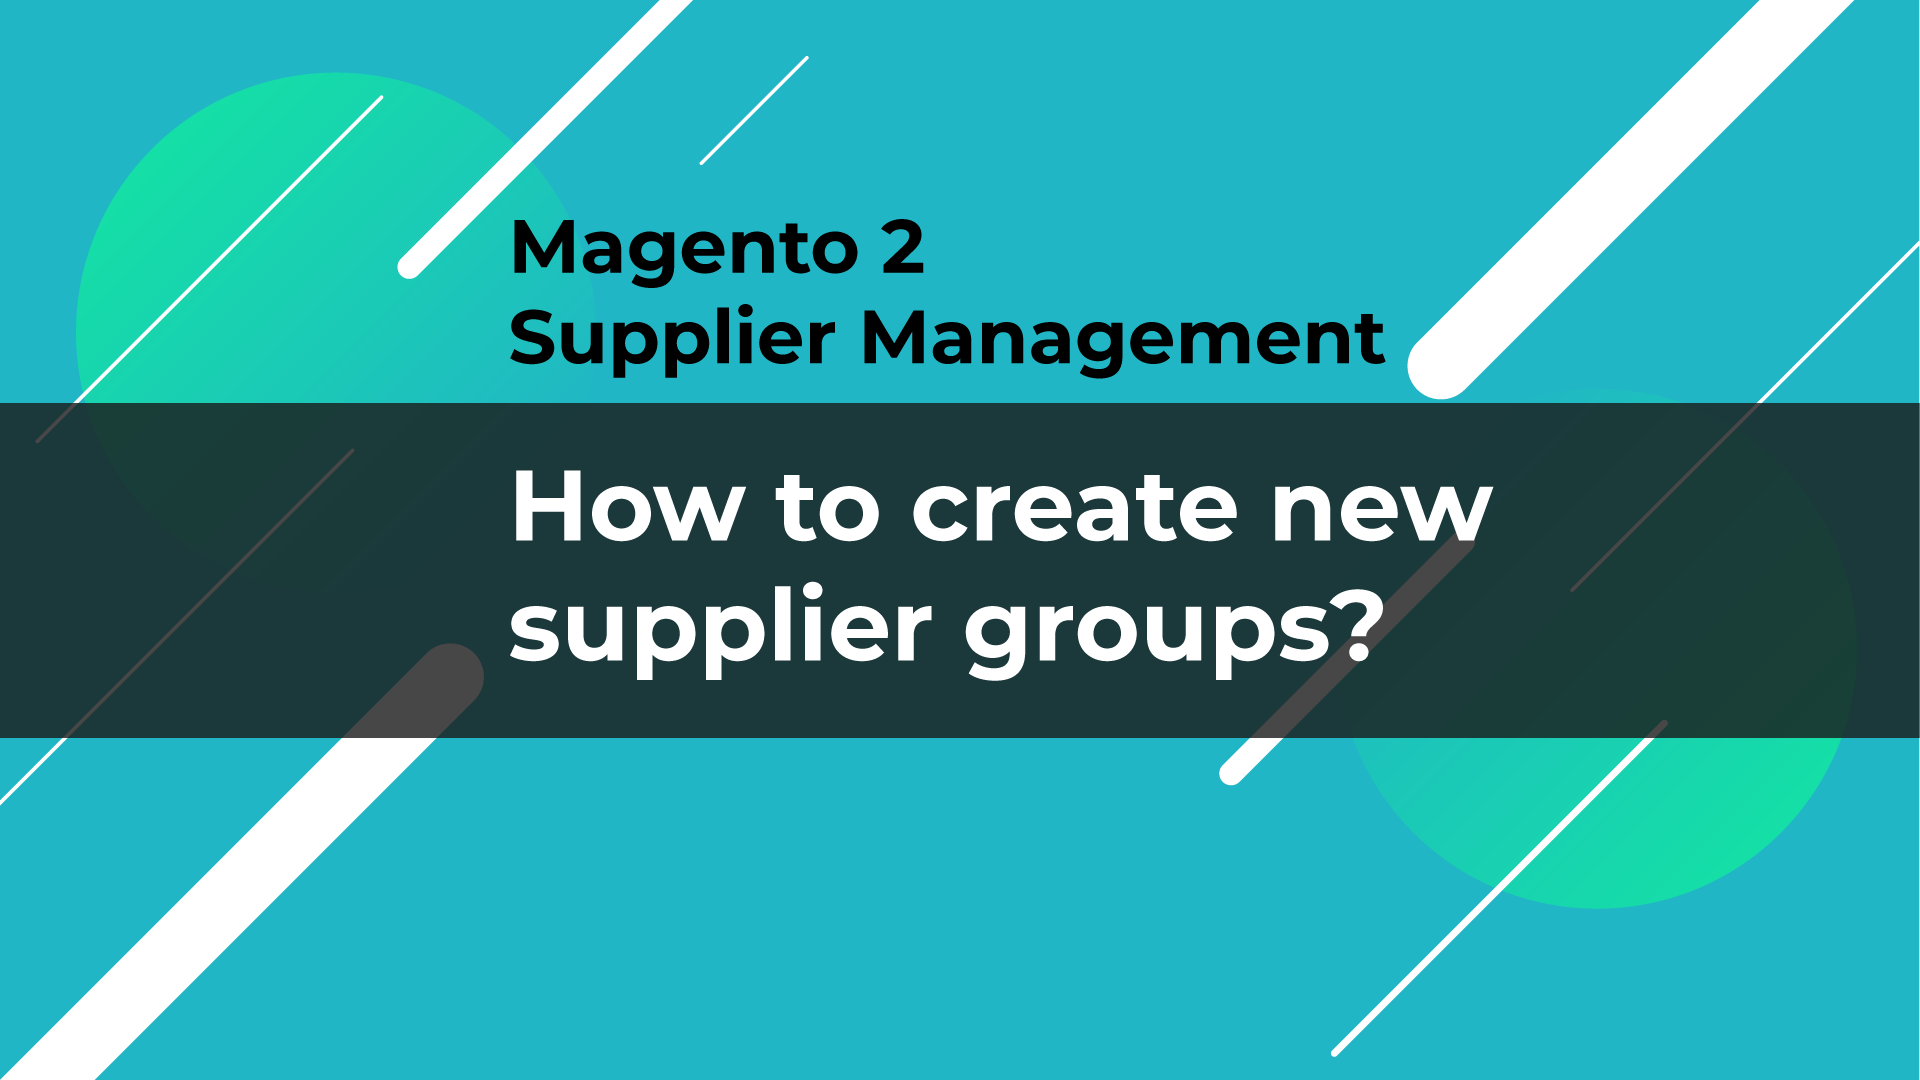 add new supplier groups